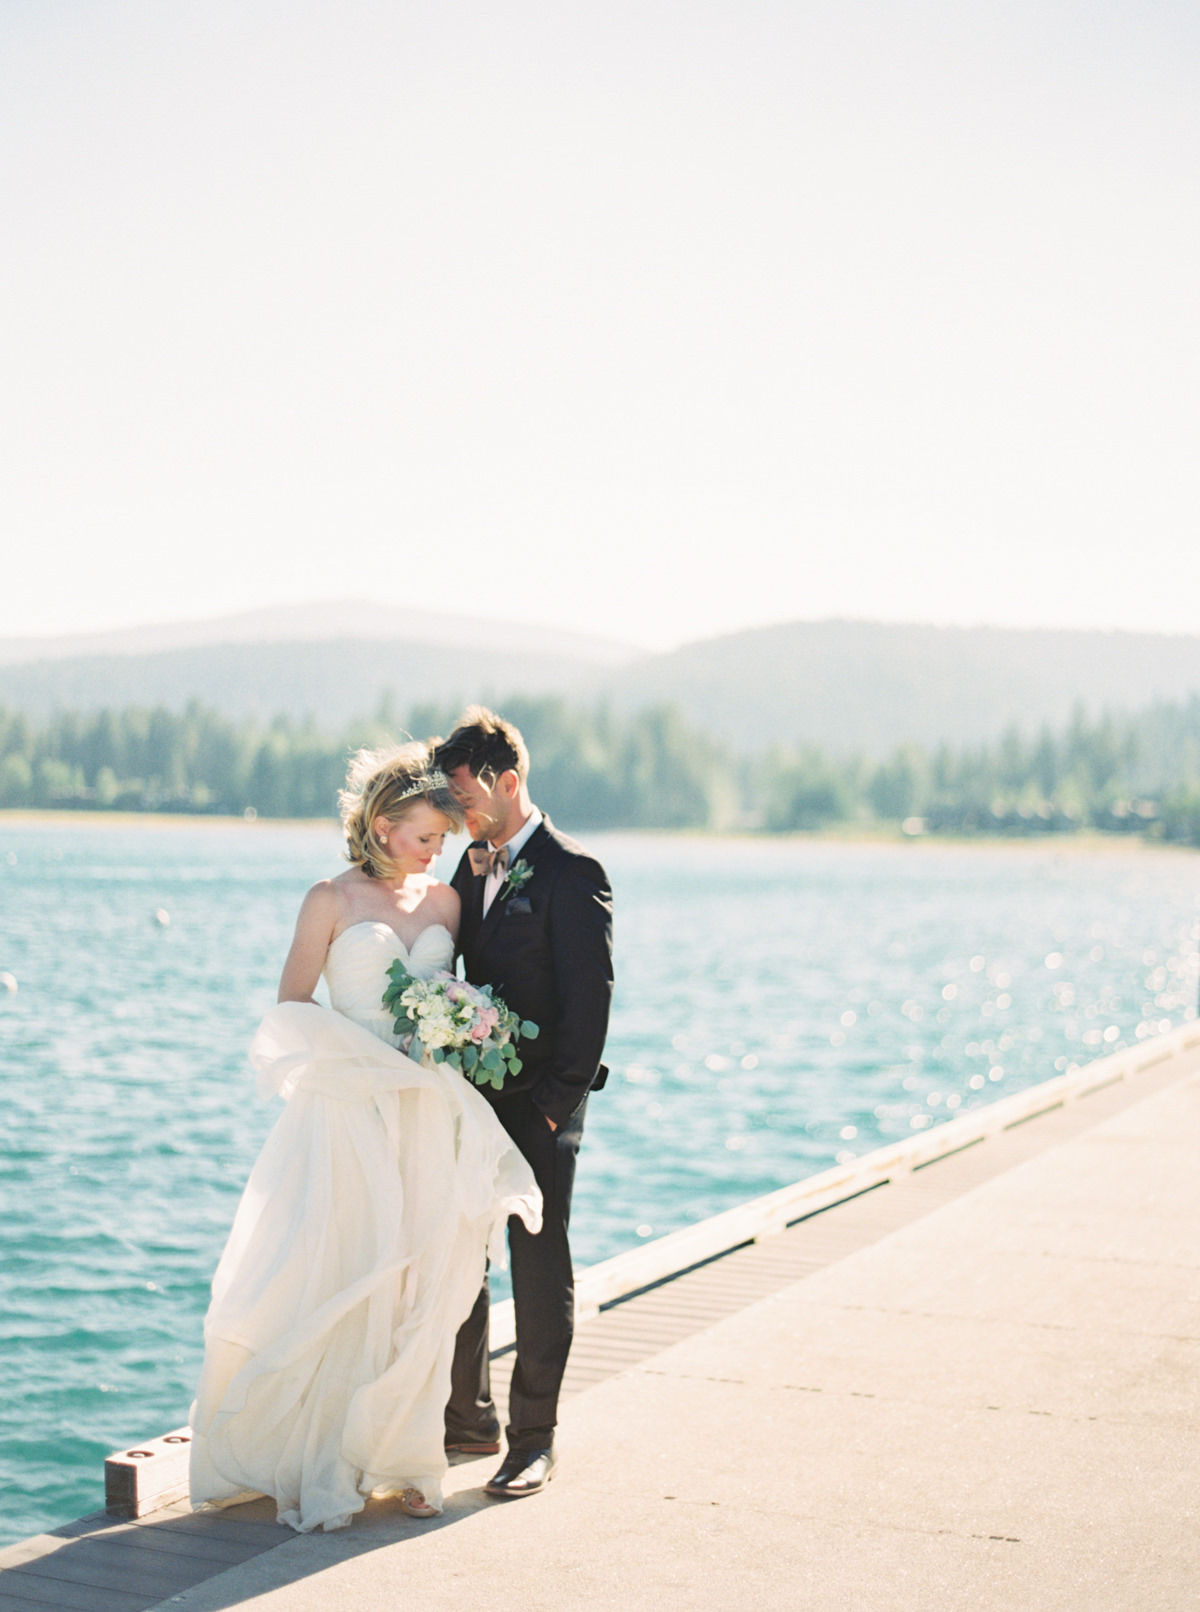 Lake Tahoe Weddings | Lake Tahoe Wedding Kerry Mike Matoli Keely San Diego Wedding